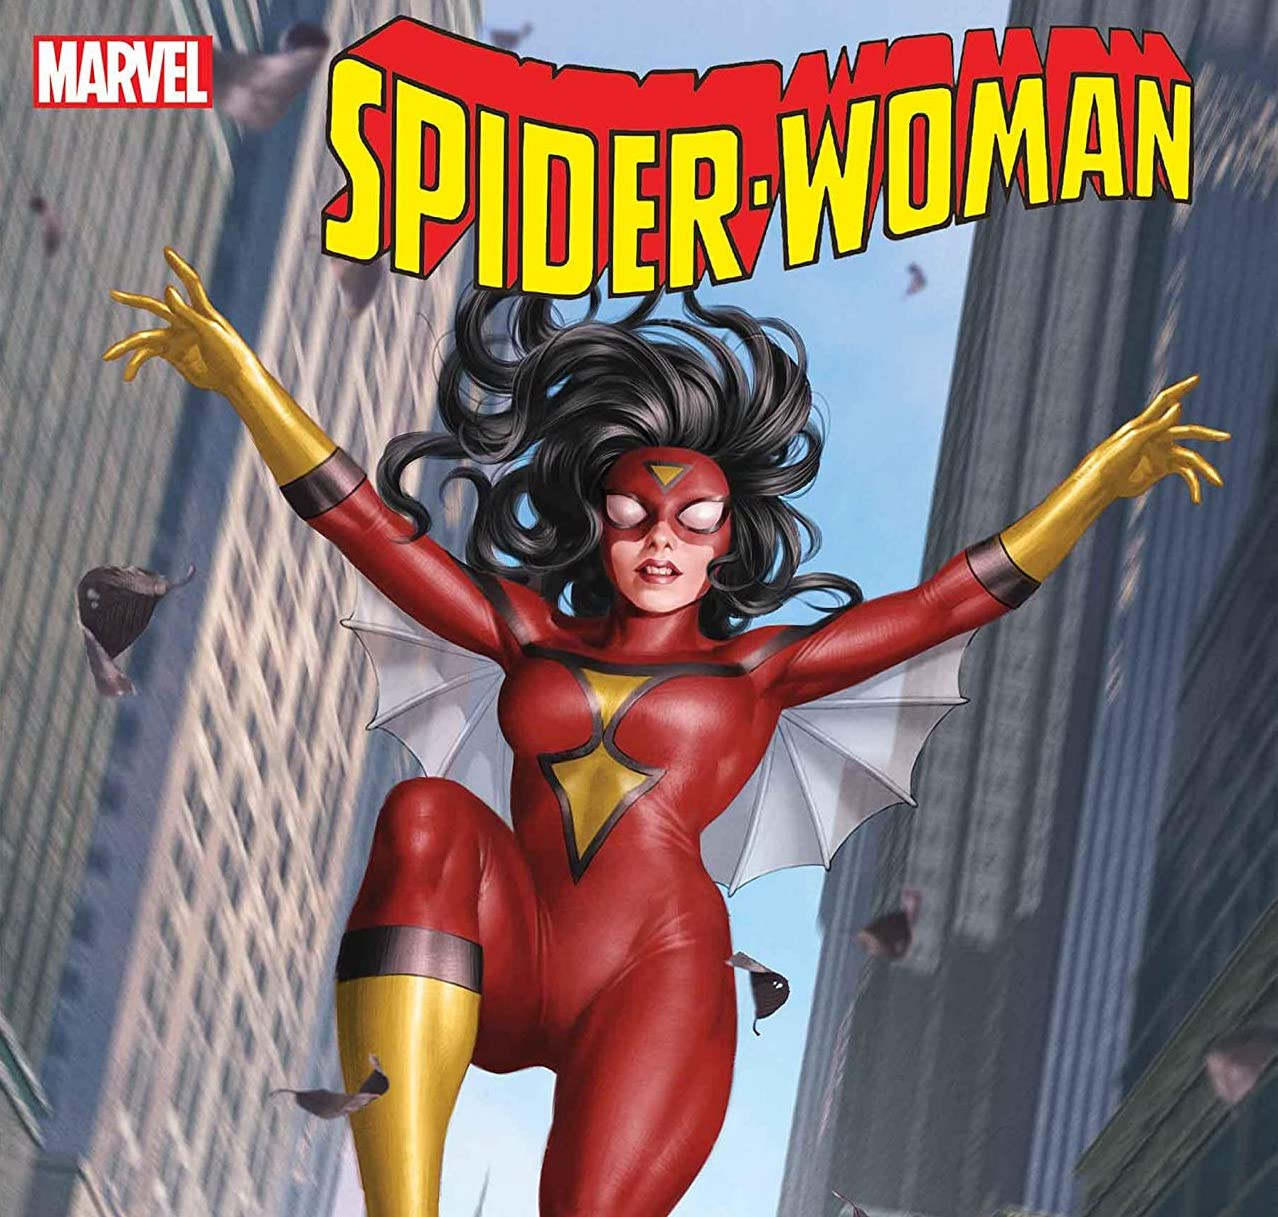 'Spider-Woman' #11 is the definition of high-energy action comics